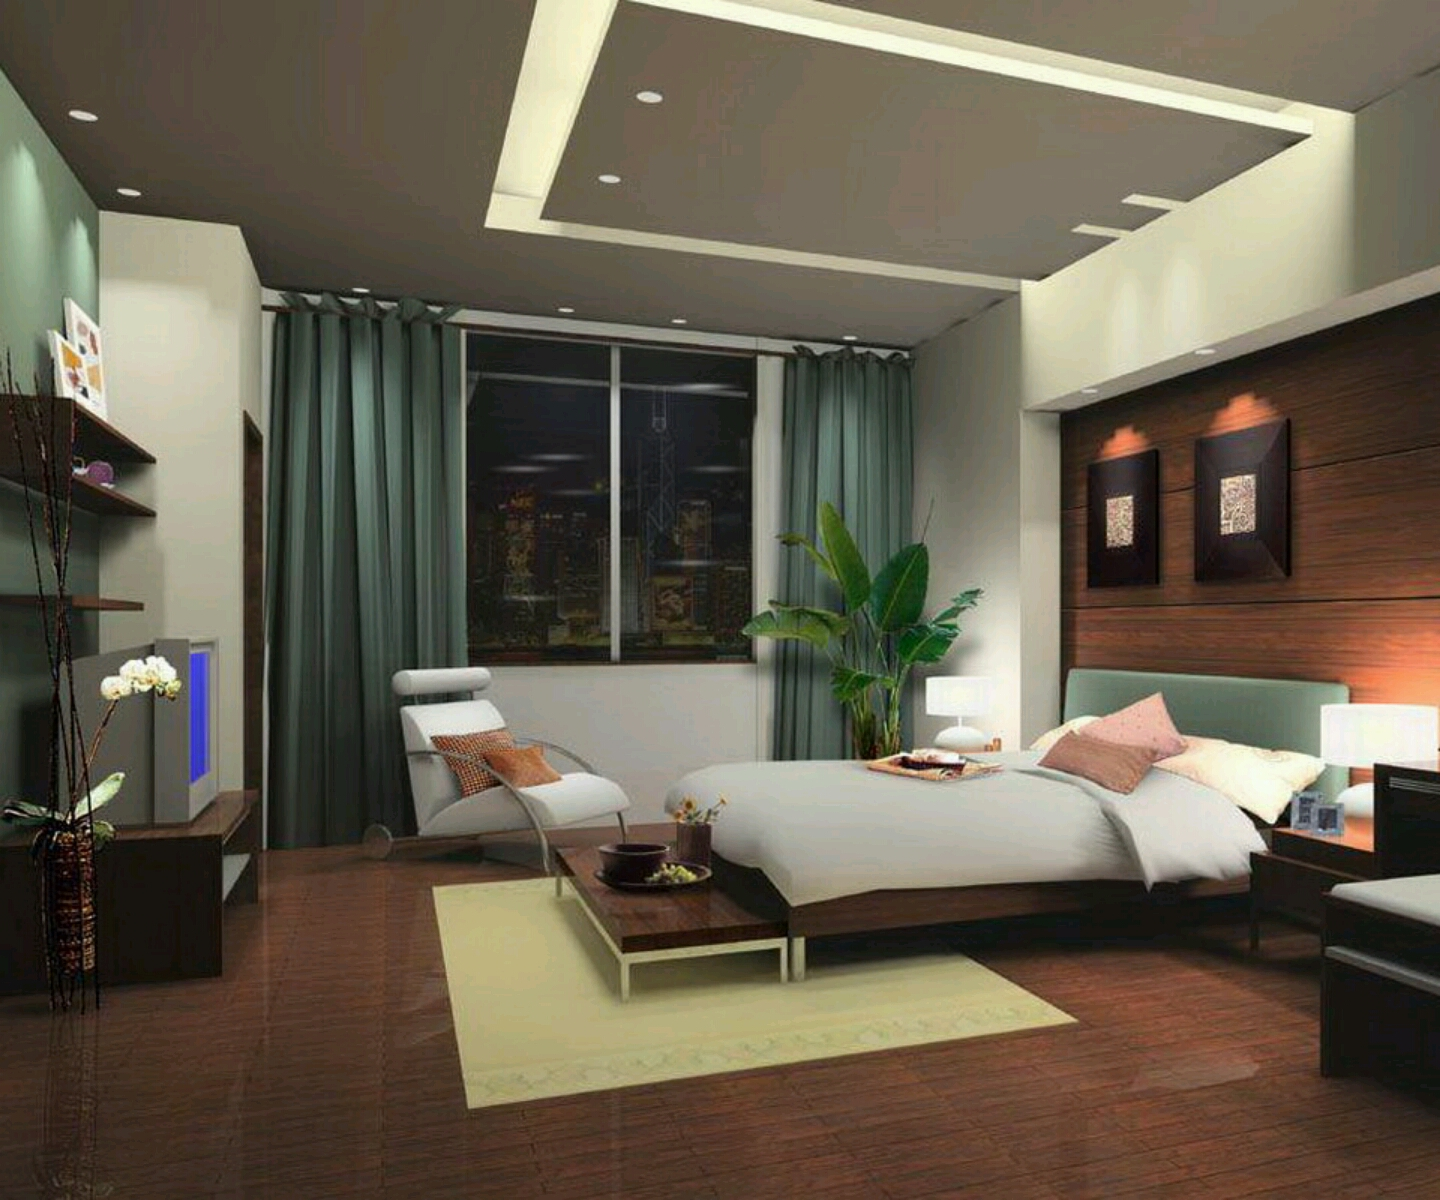 new home designs latest modern bedrooms designs best ideas On new modern bedroom designs